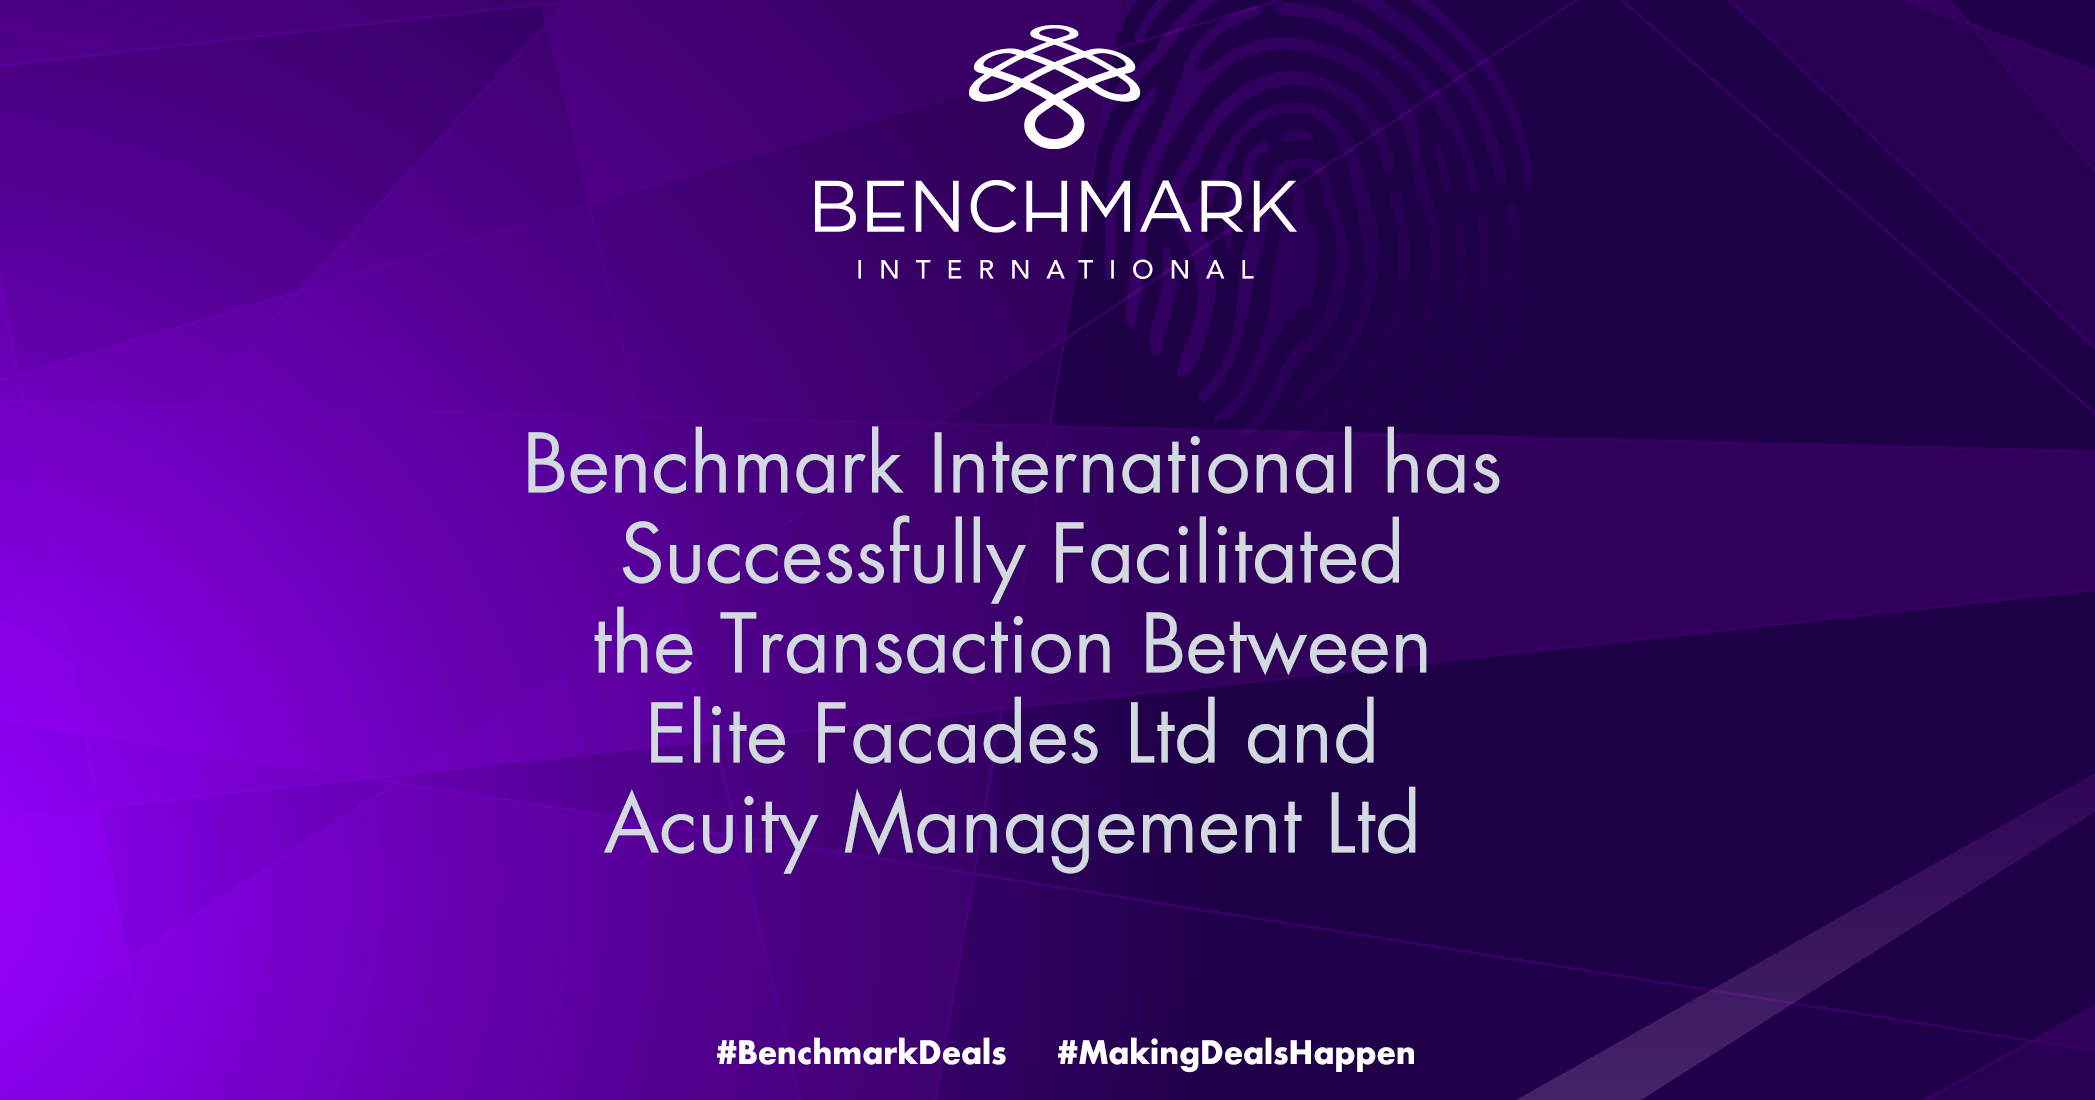 Benchmark International has Successfully Facilitated the Transaction Between Elite Facades Ltd and Acuity Management Ltd